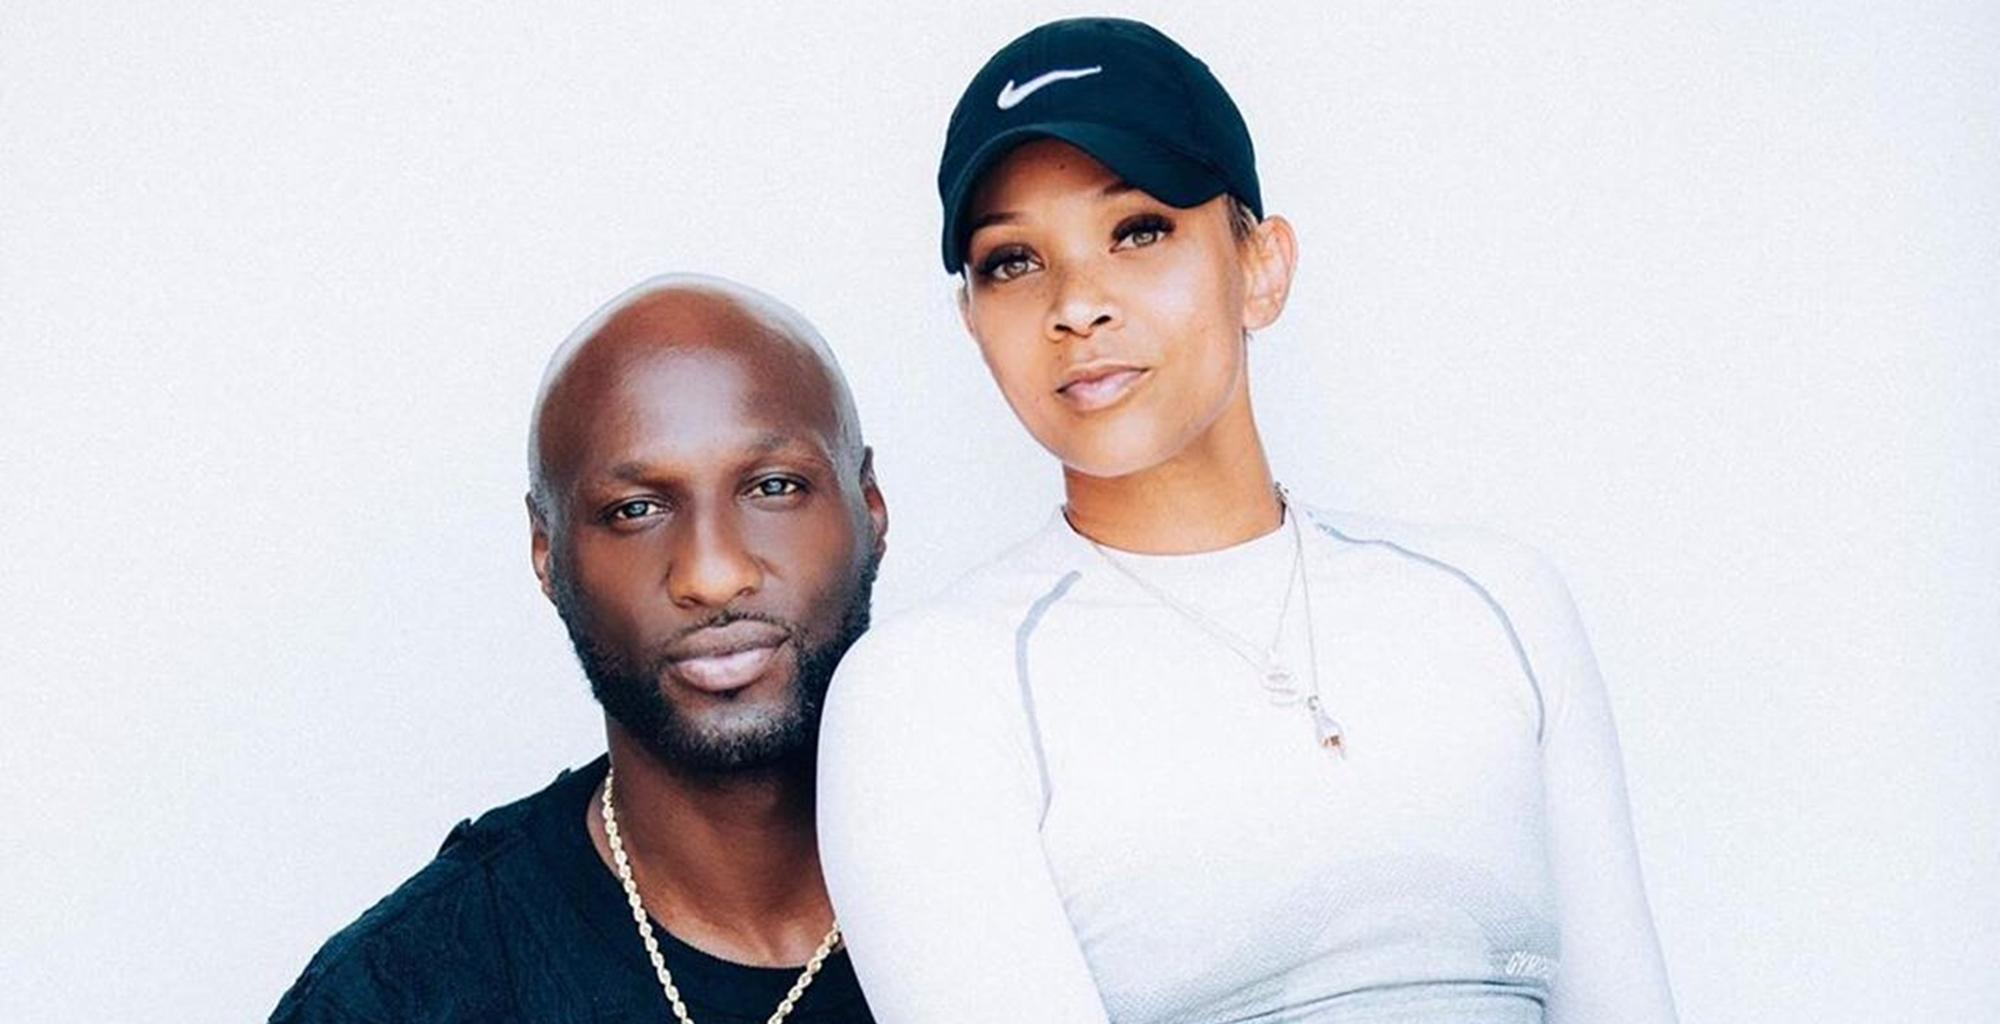 Lamar Odom Shares Raunchy New Picture, Kissing Sabrina Parr, As New Rumor About Their Romance Is Revealed